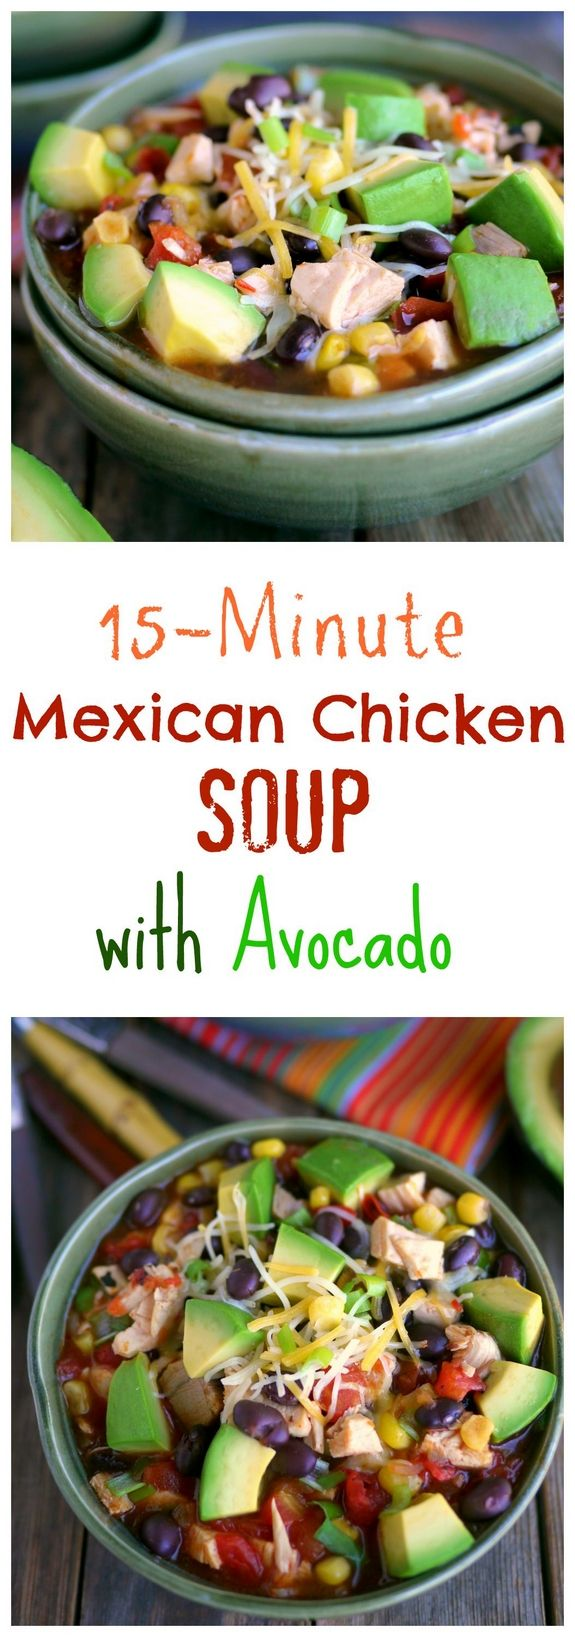 15-Minute Mexican Chicken Soup with Avocado. You are going to love how easily this comes together from NoblePig.com